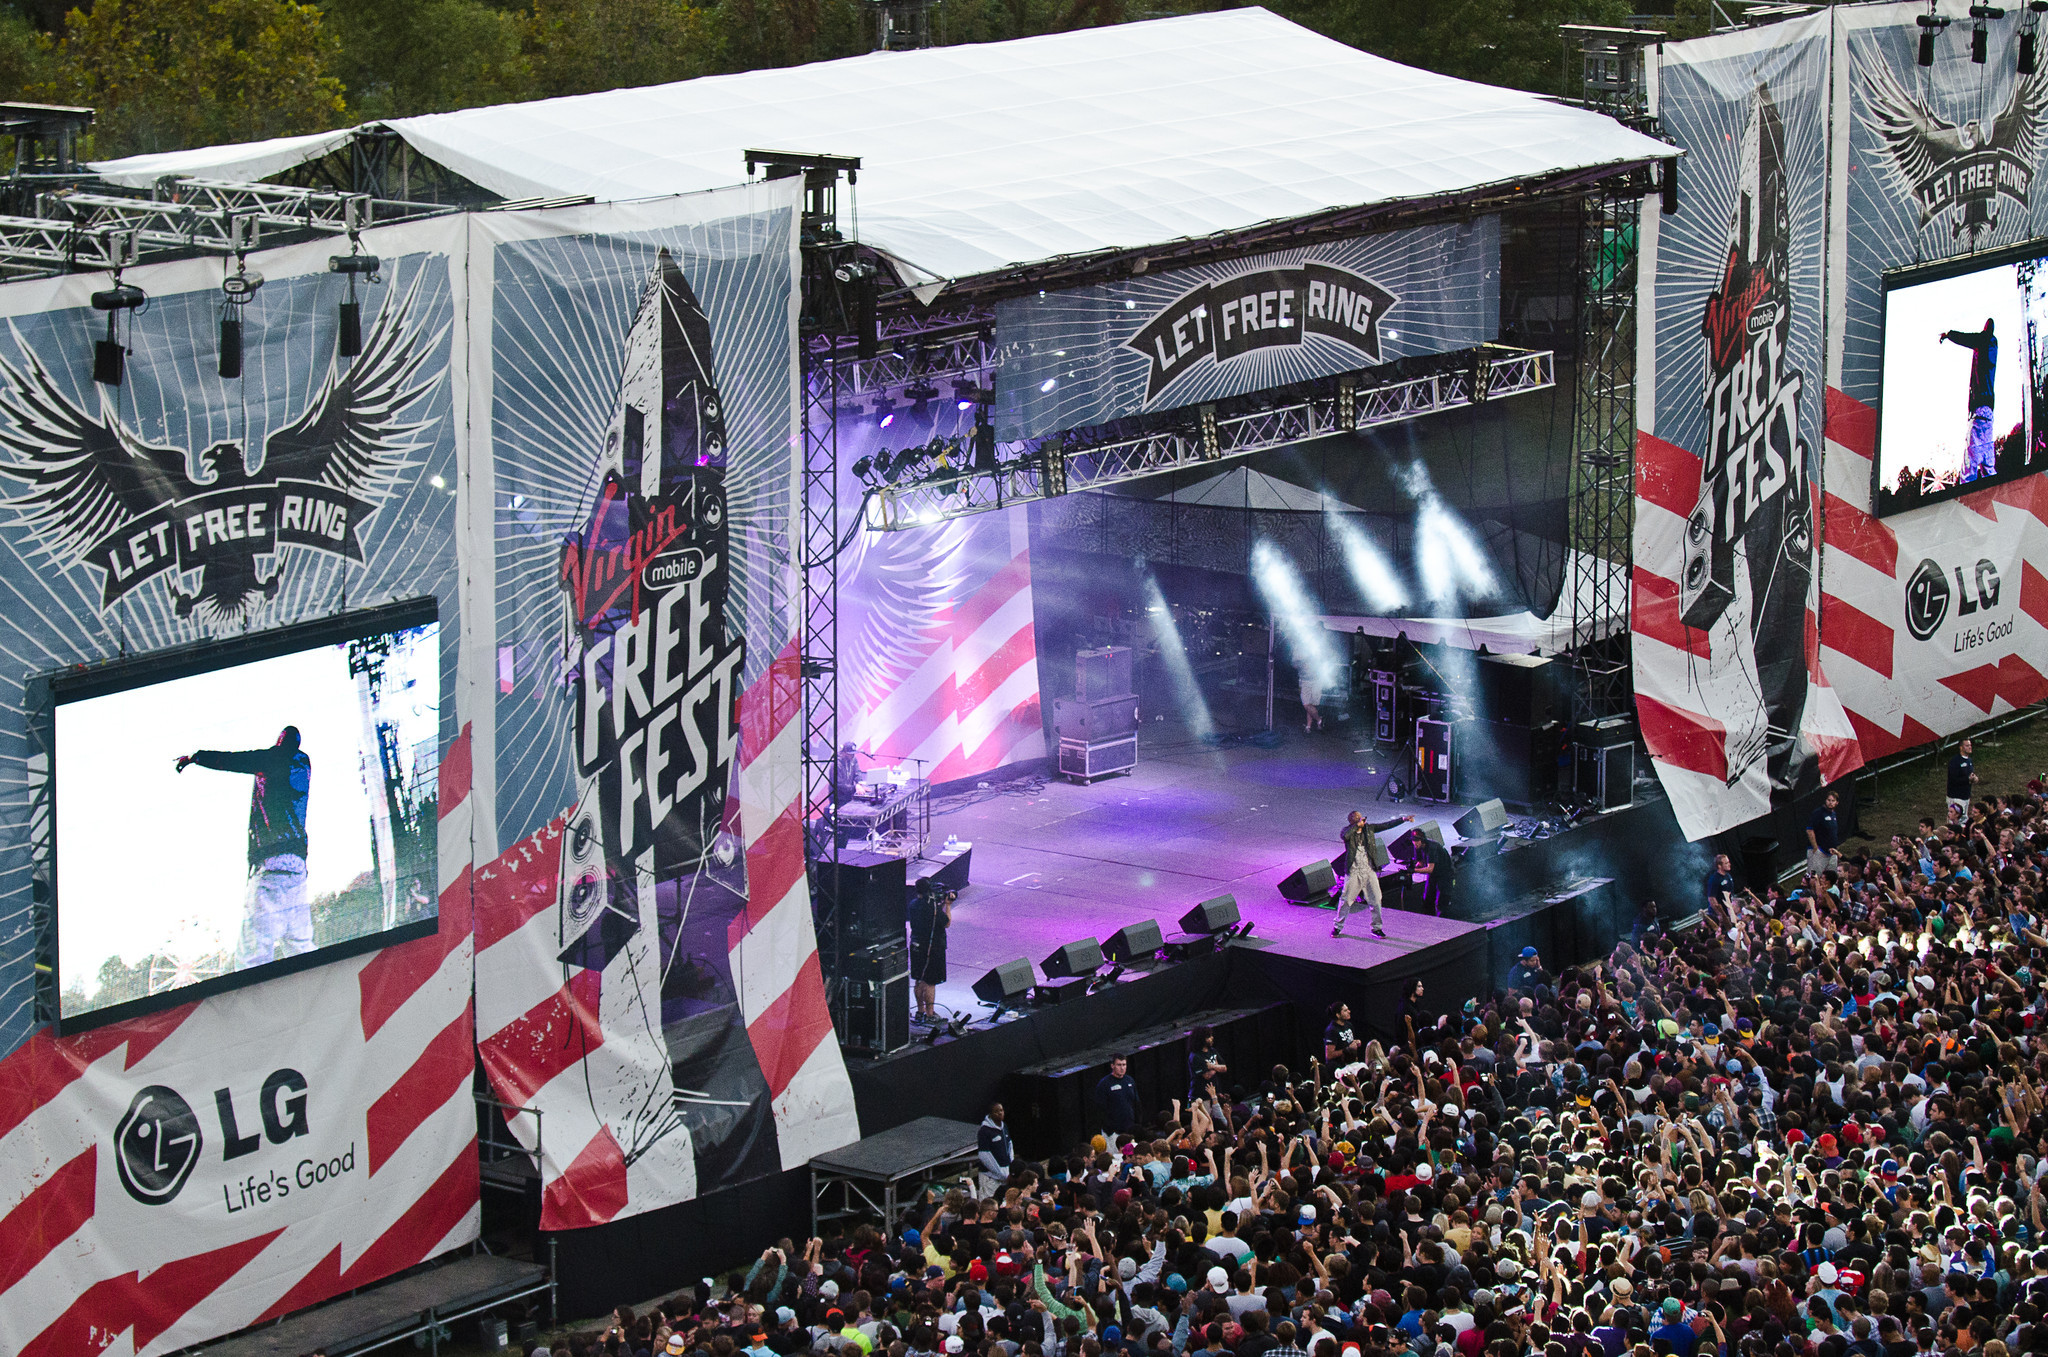 Virgin Mobile FreeFest brings thousands to Merriweather